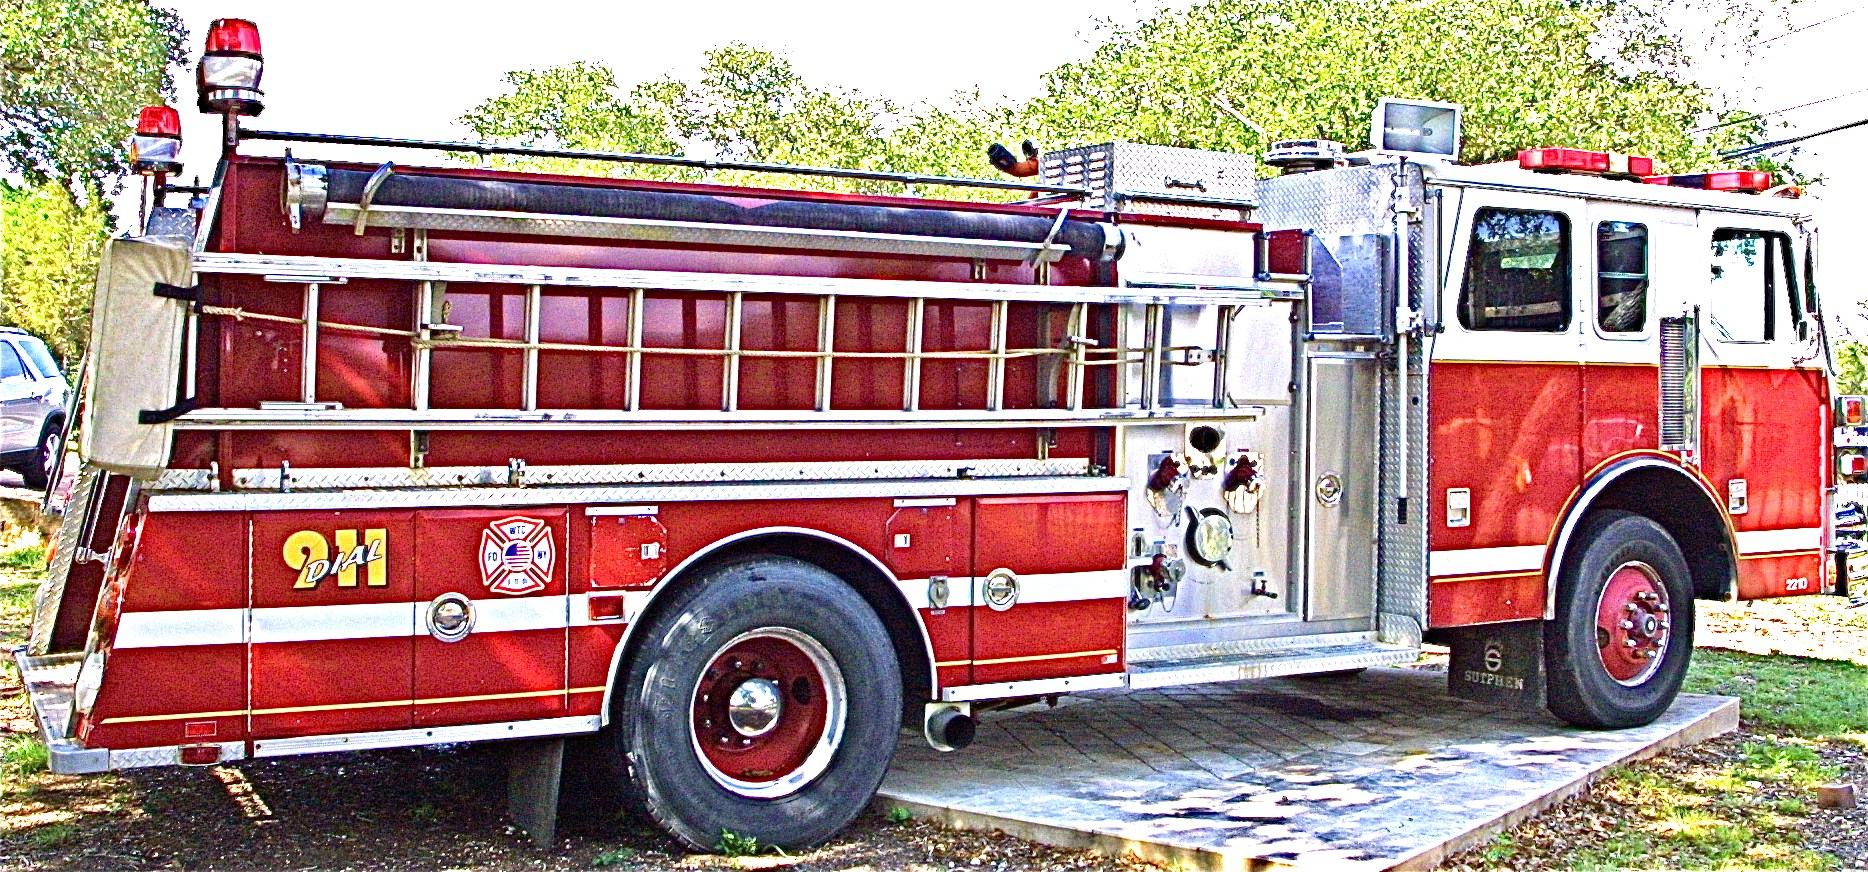 Used Fire Trucks : Buy this large red lightly used fire truck in nw austin